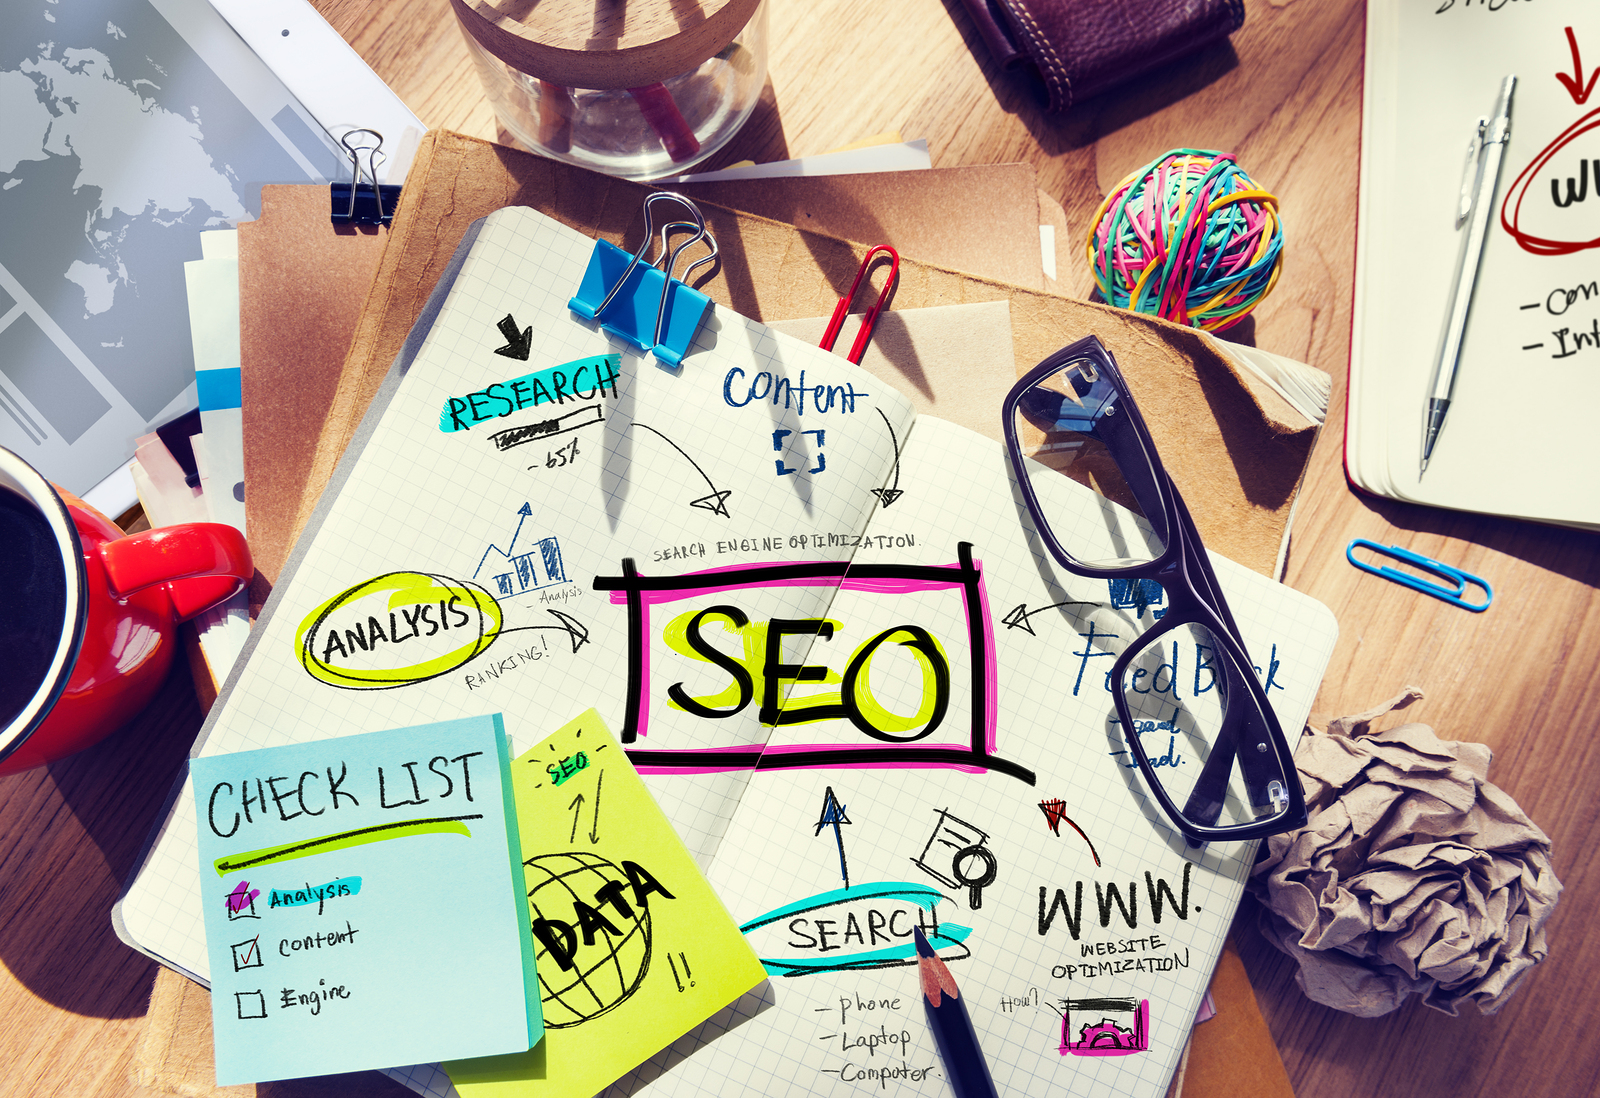 bigstock-Desk-with-Notes-About-SEO-66176365-1 3 Common SEO Myths That Need to be Debunked